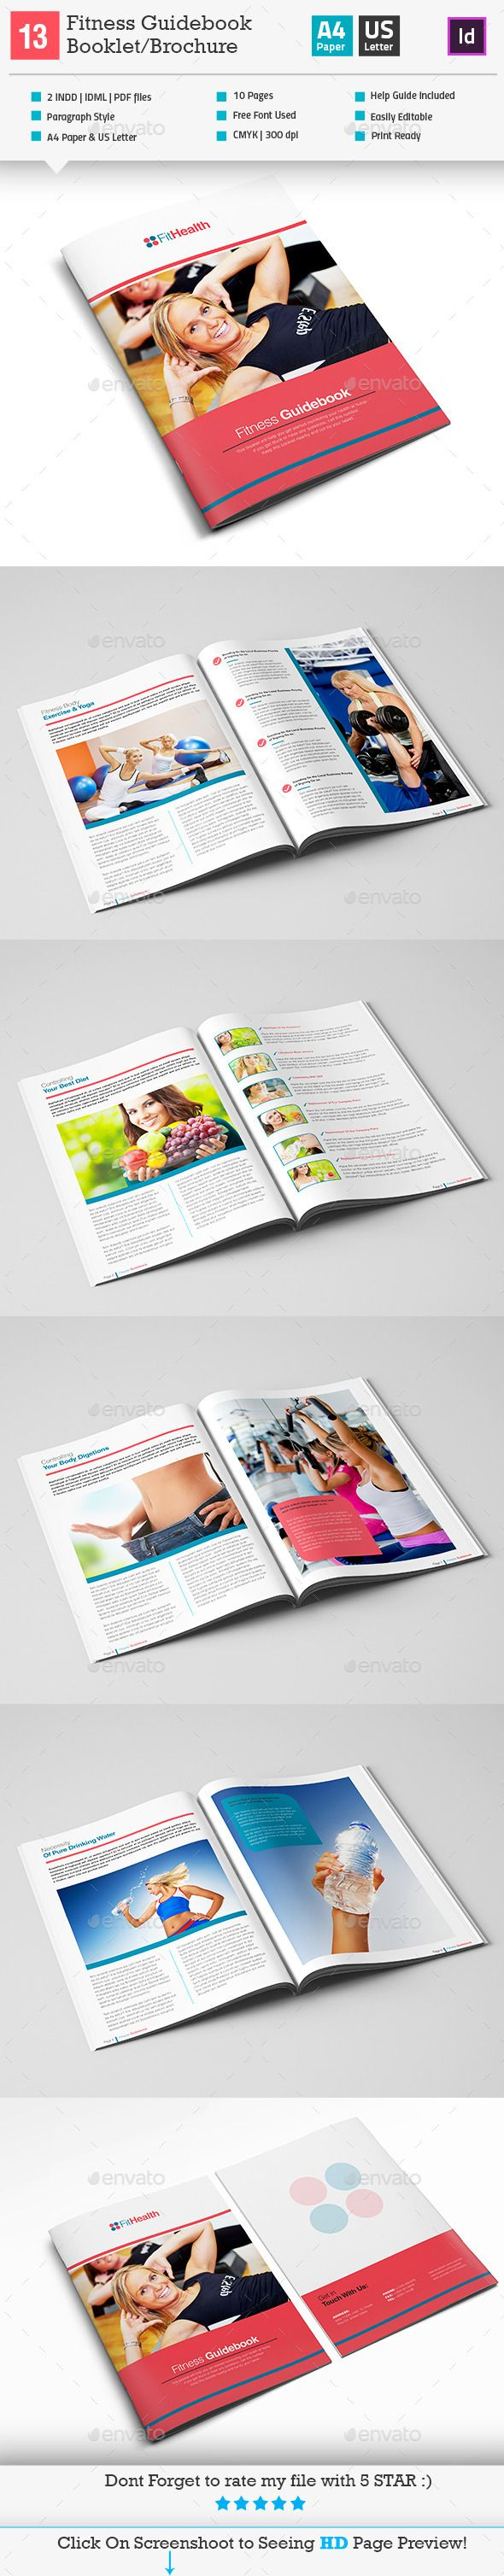 149 best images about Design ideas – Guidebook Template